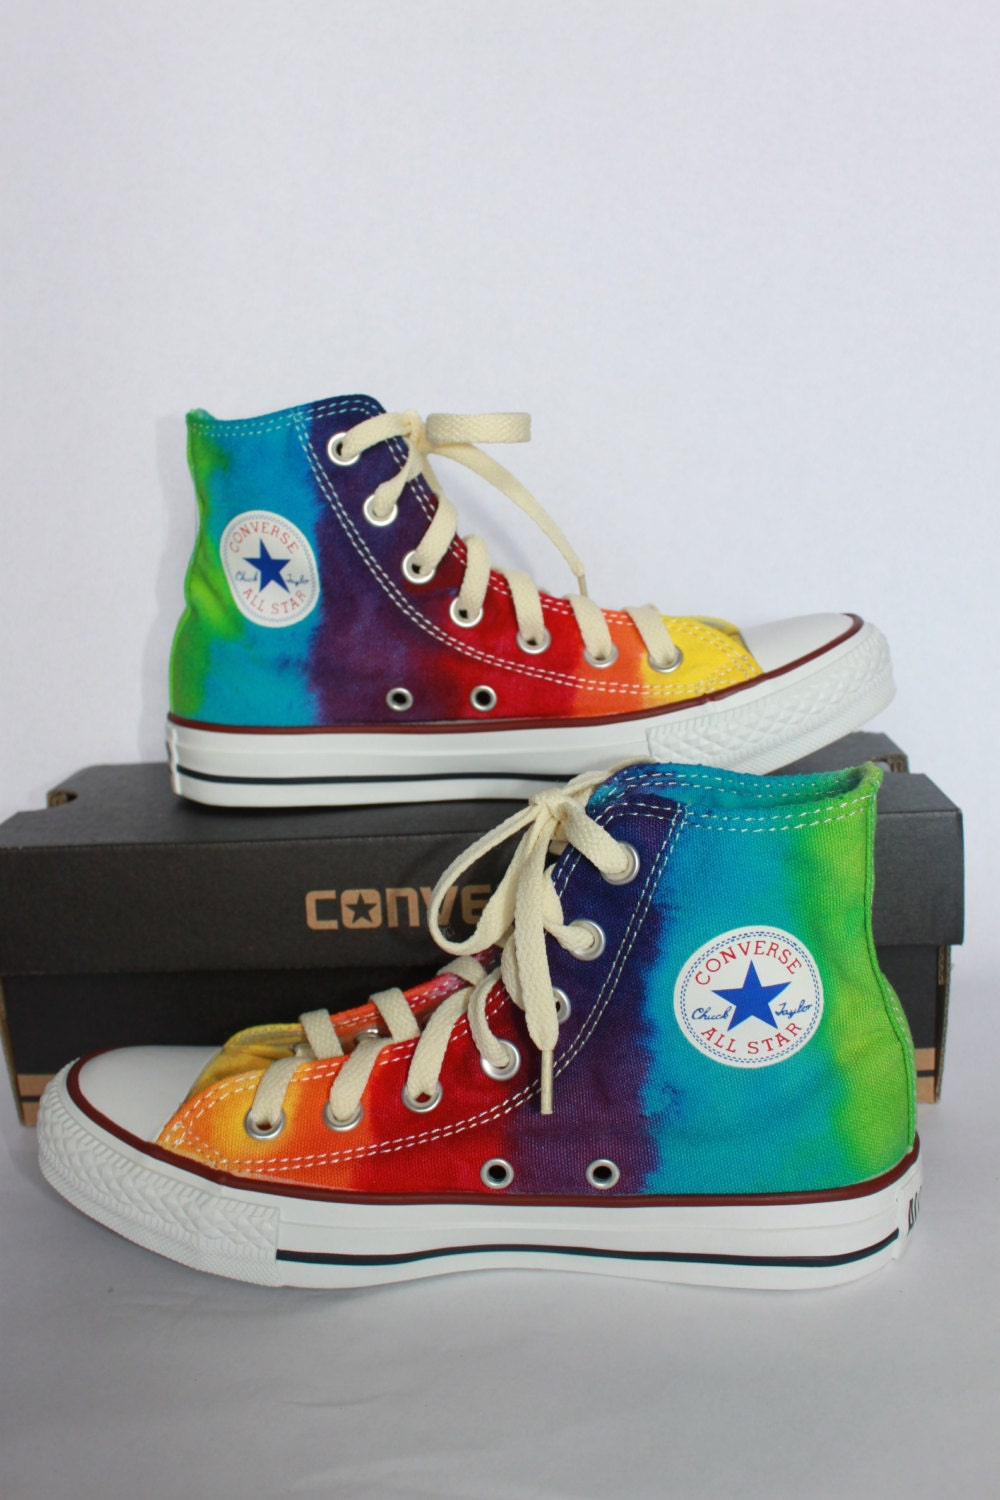 new product b3844 f1551 converse all star star star chuck taylor tie dye haut bas haut chaussures  sur mesure